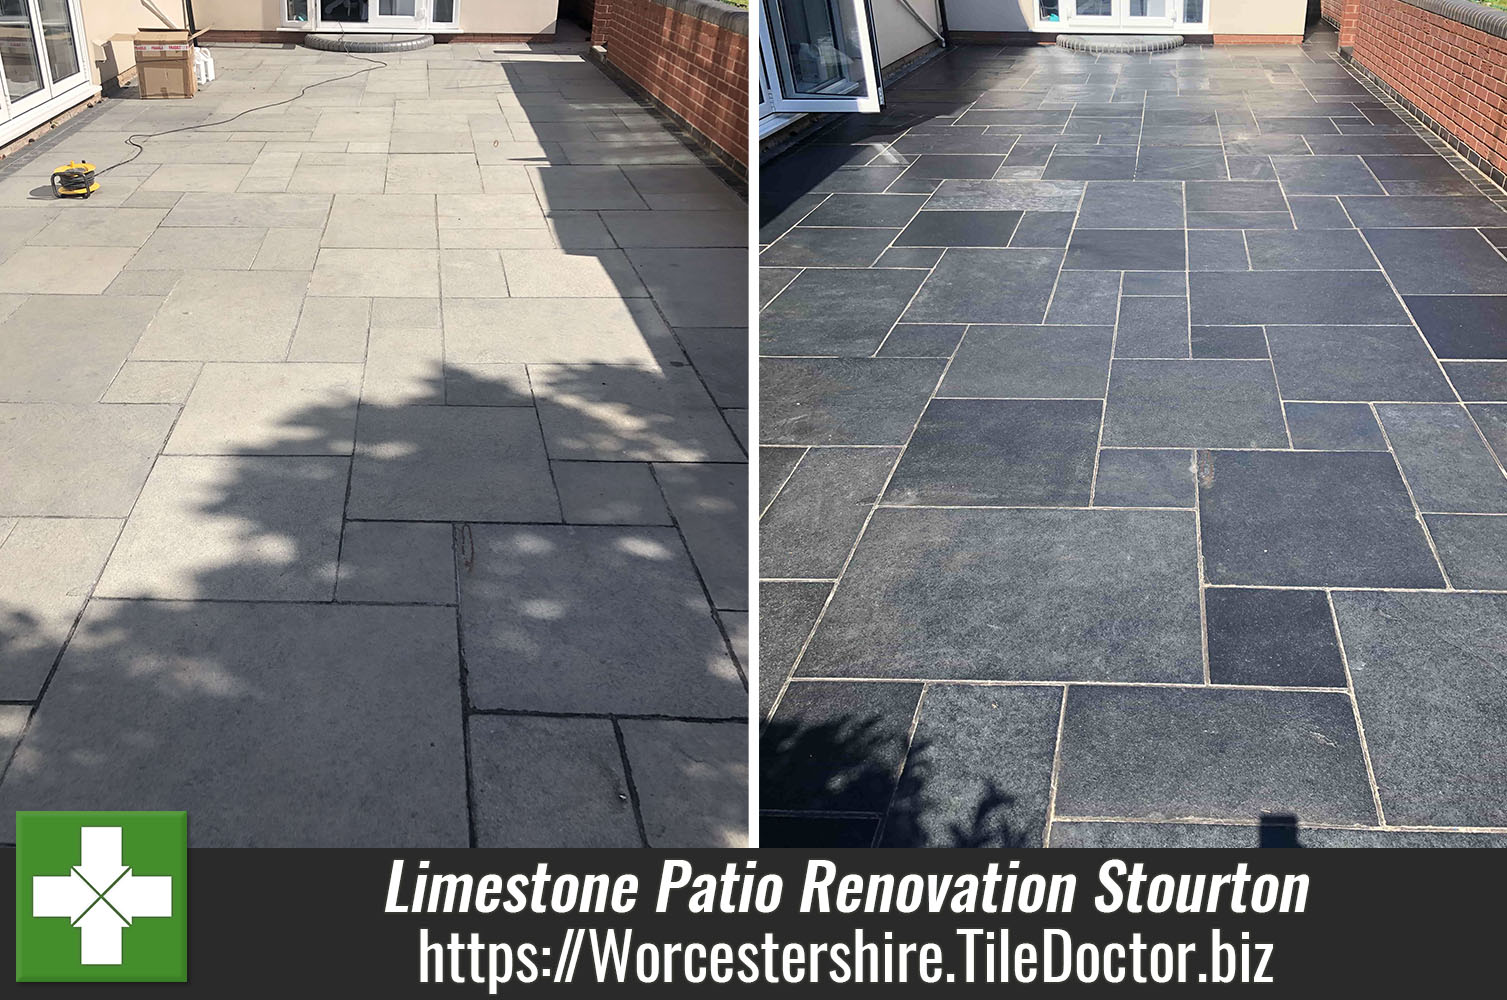 Limestone Patio Before and After Renovation Stourton